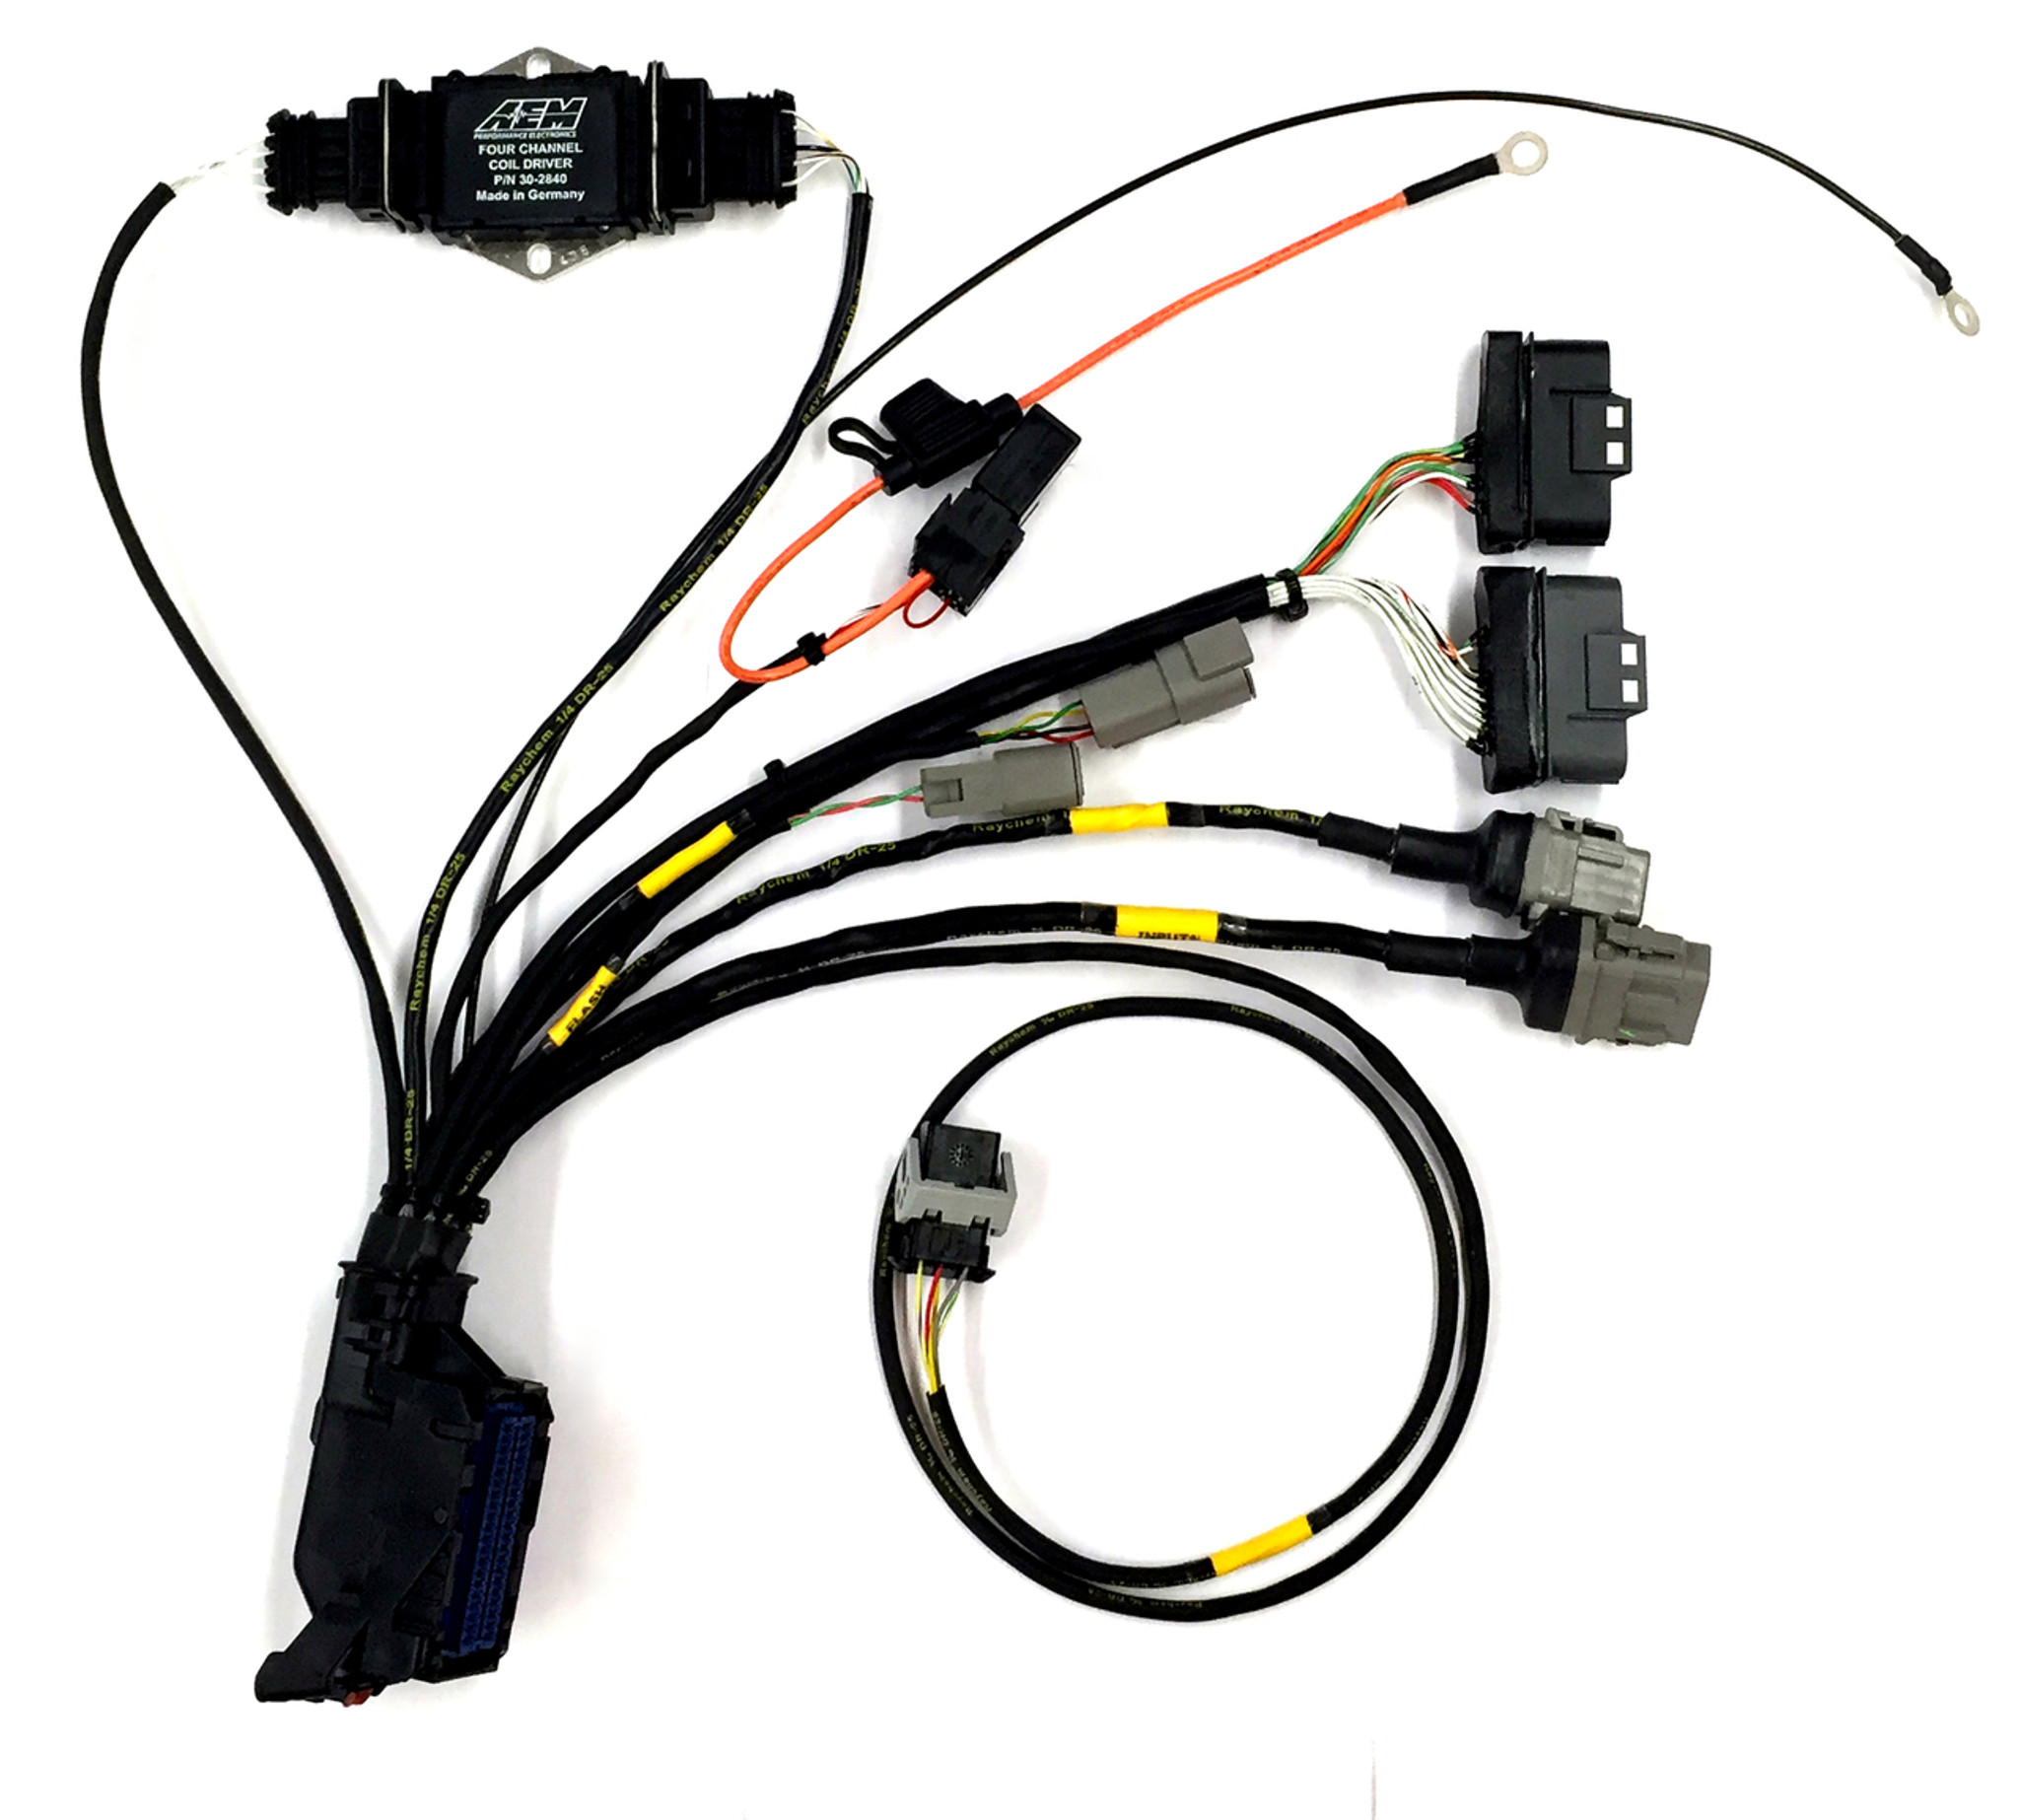 wiring harness plug and play data wiring diagraminfinity ecu plug and play wiring harness shop htp harley plug and play trailer wiring harness